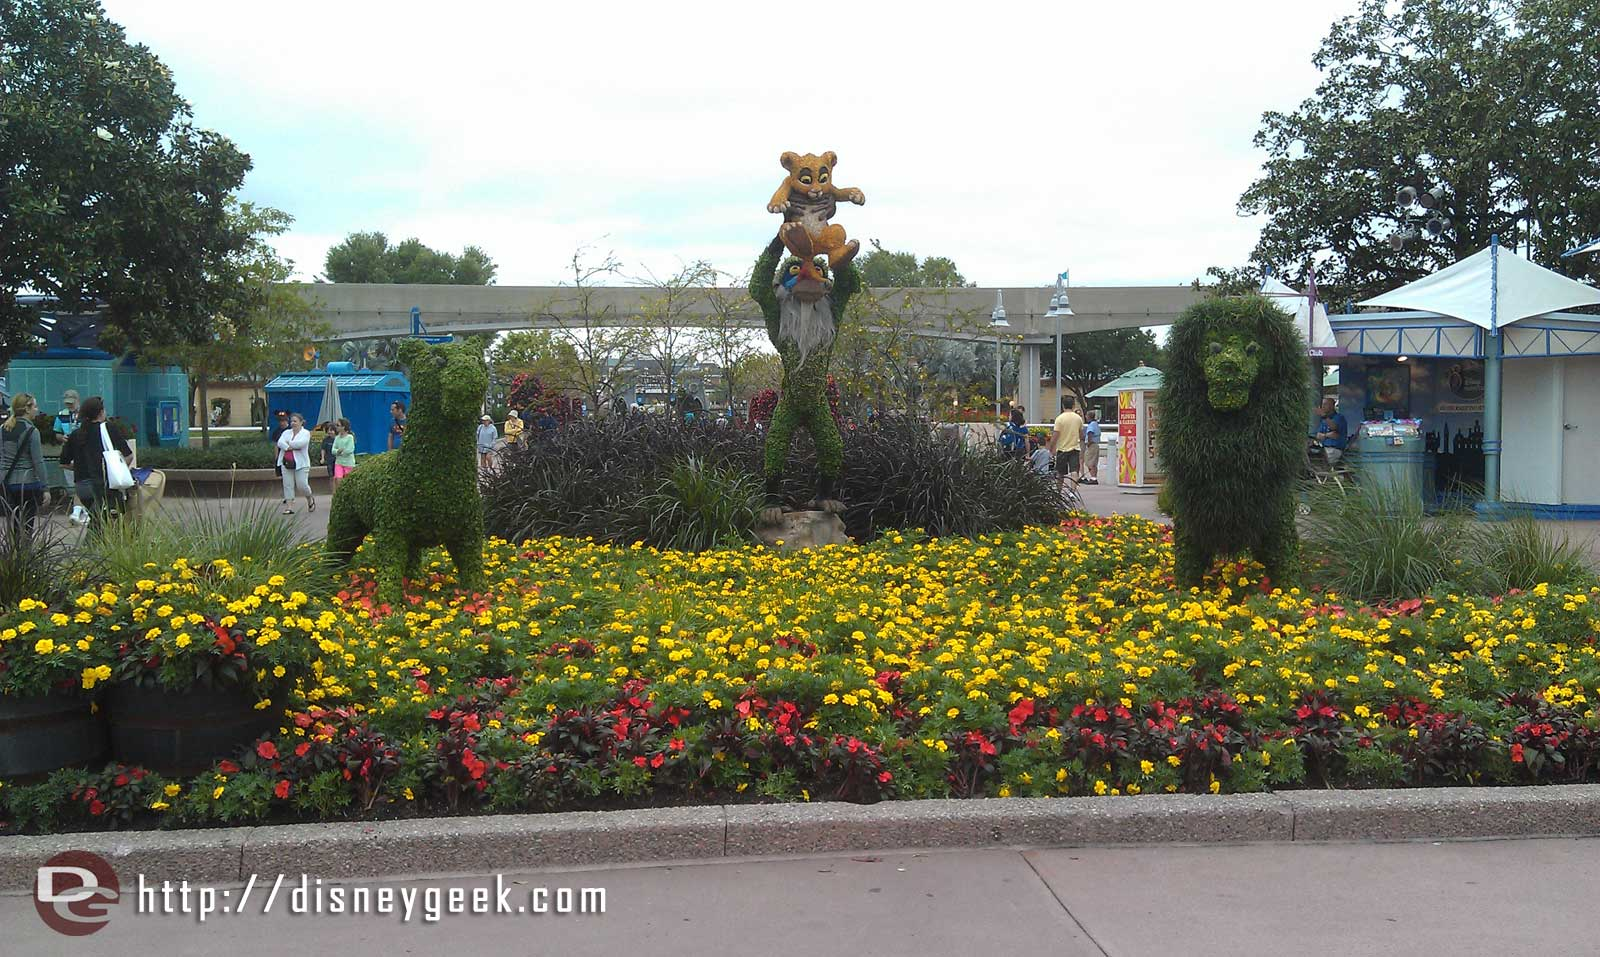 The Lion King topiaries